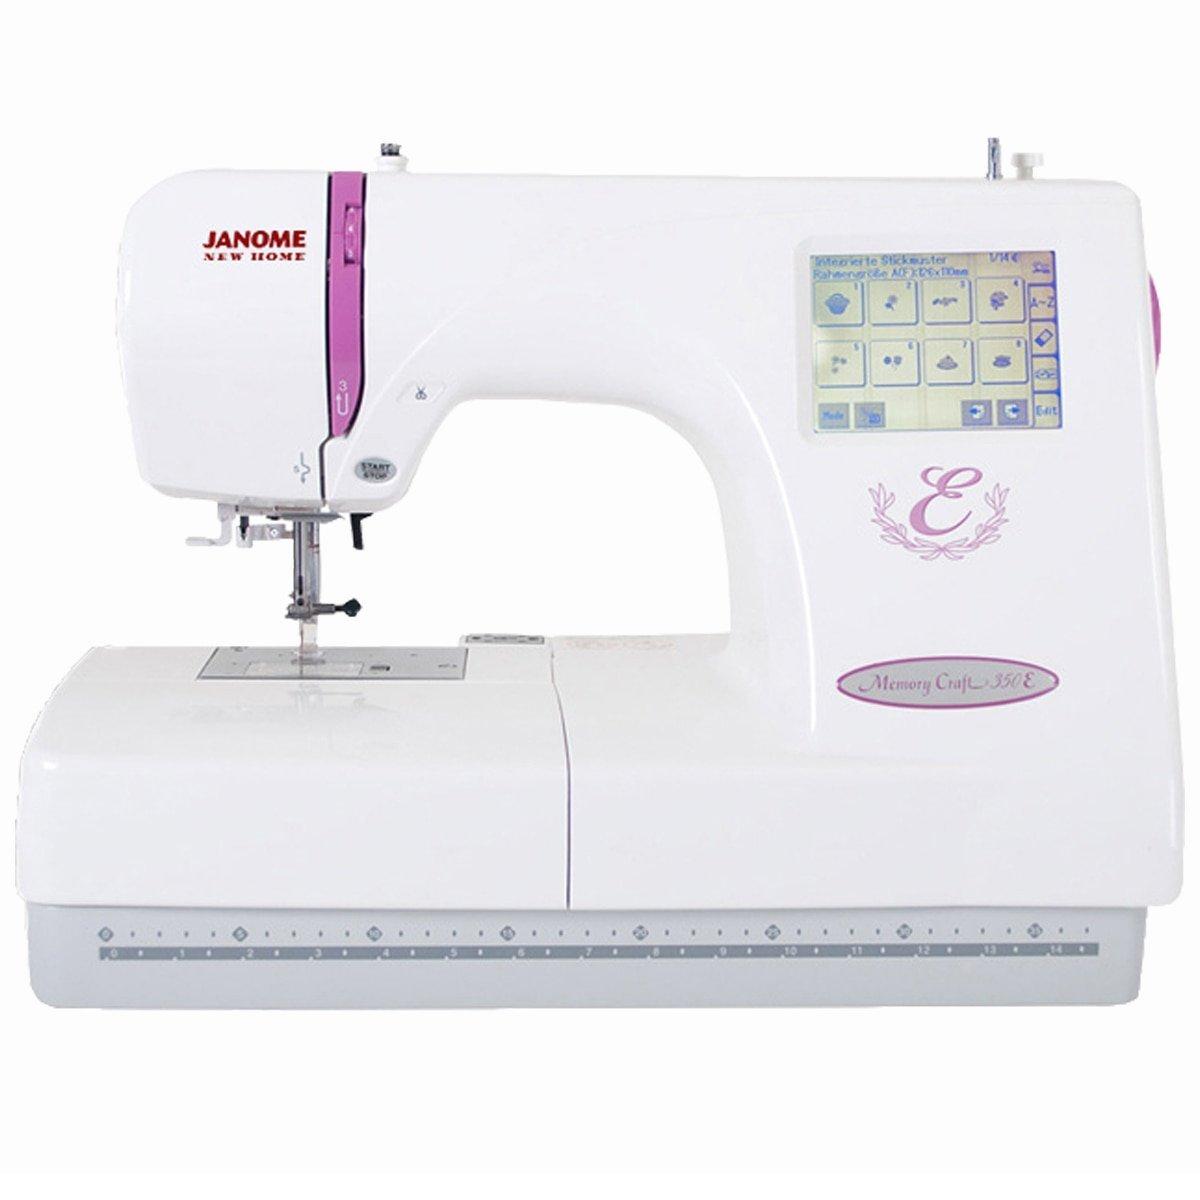 Memory Craft Embroidery Machine Janome 350E